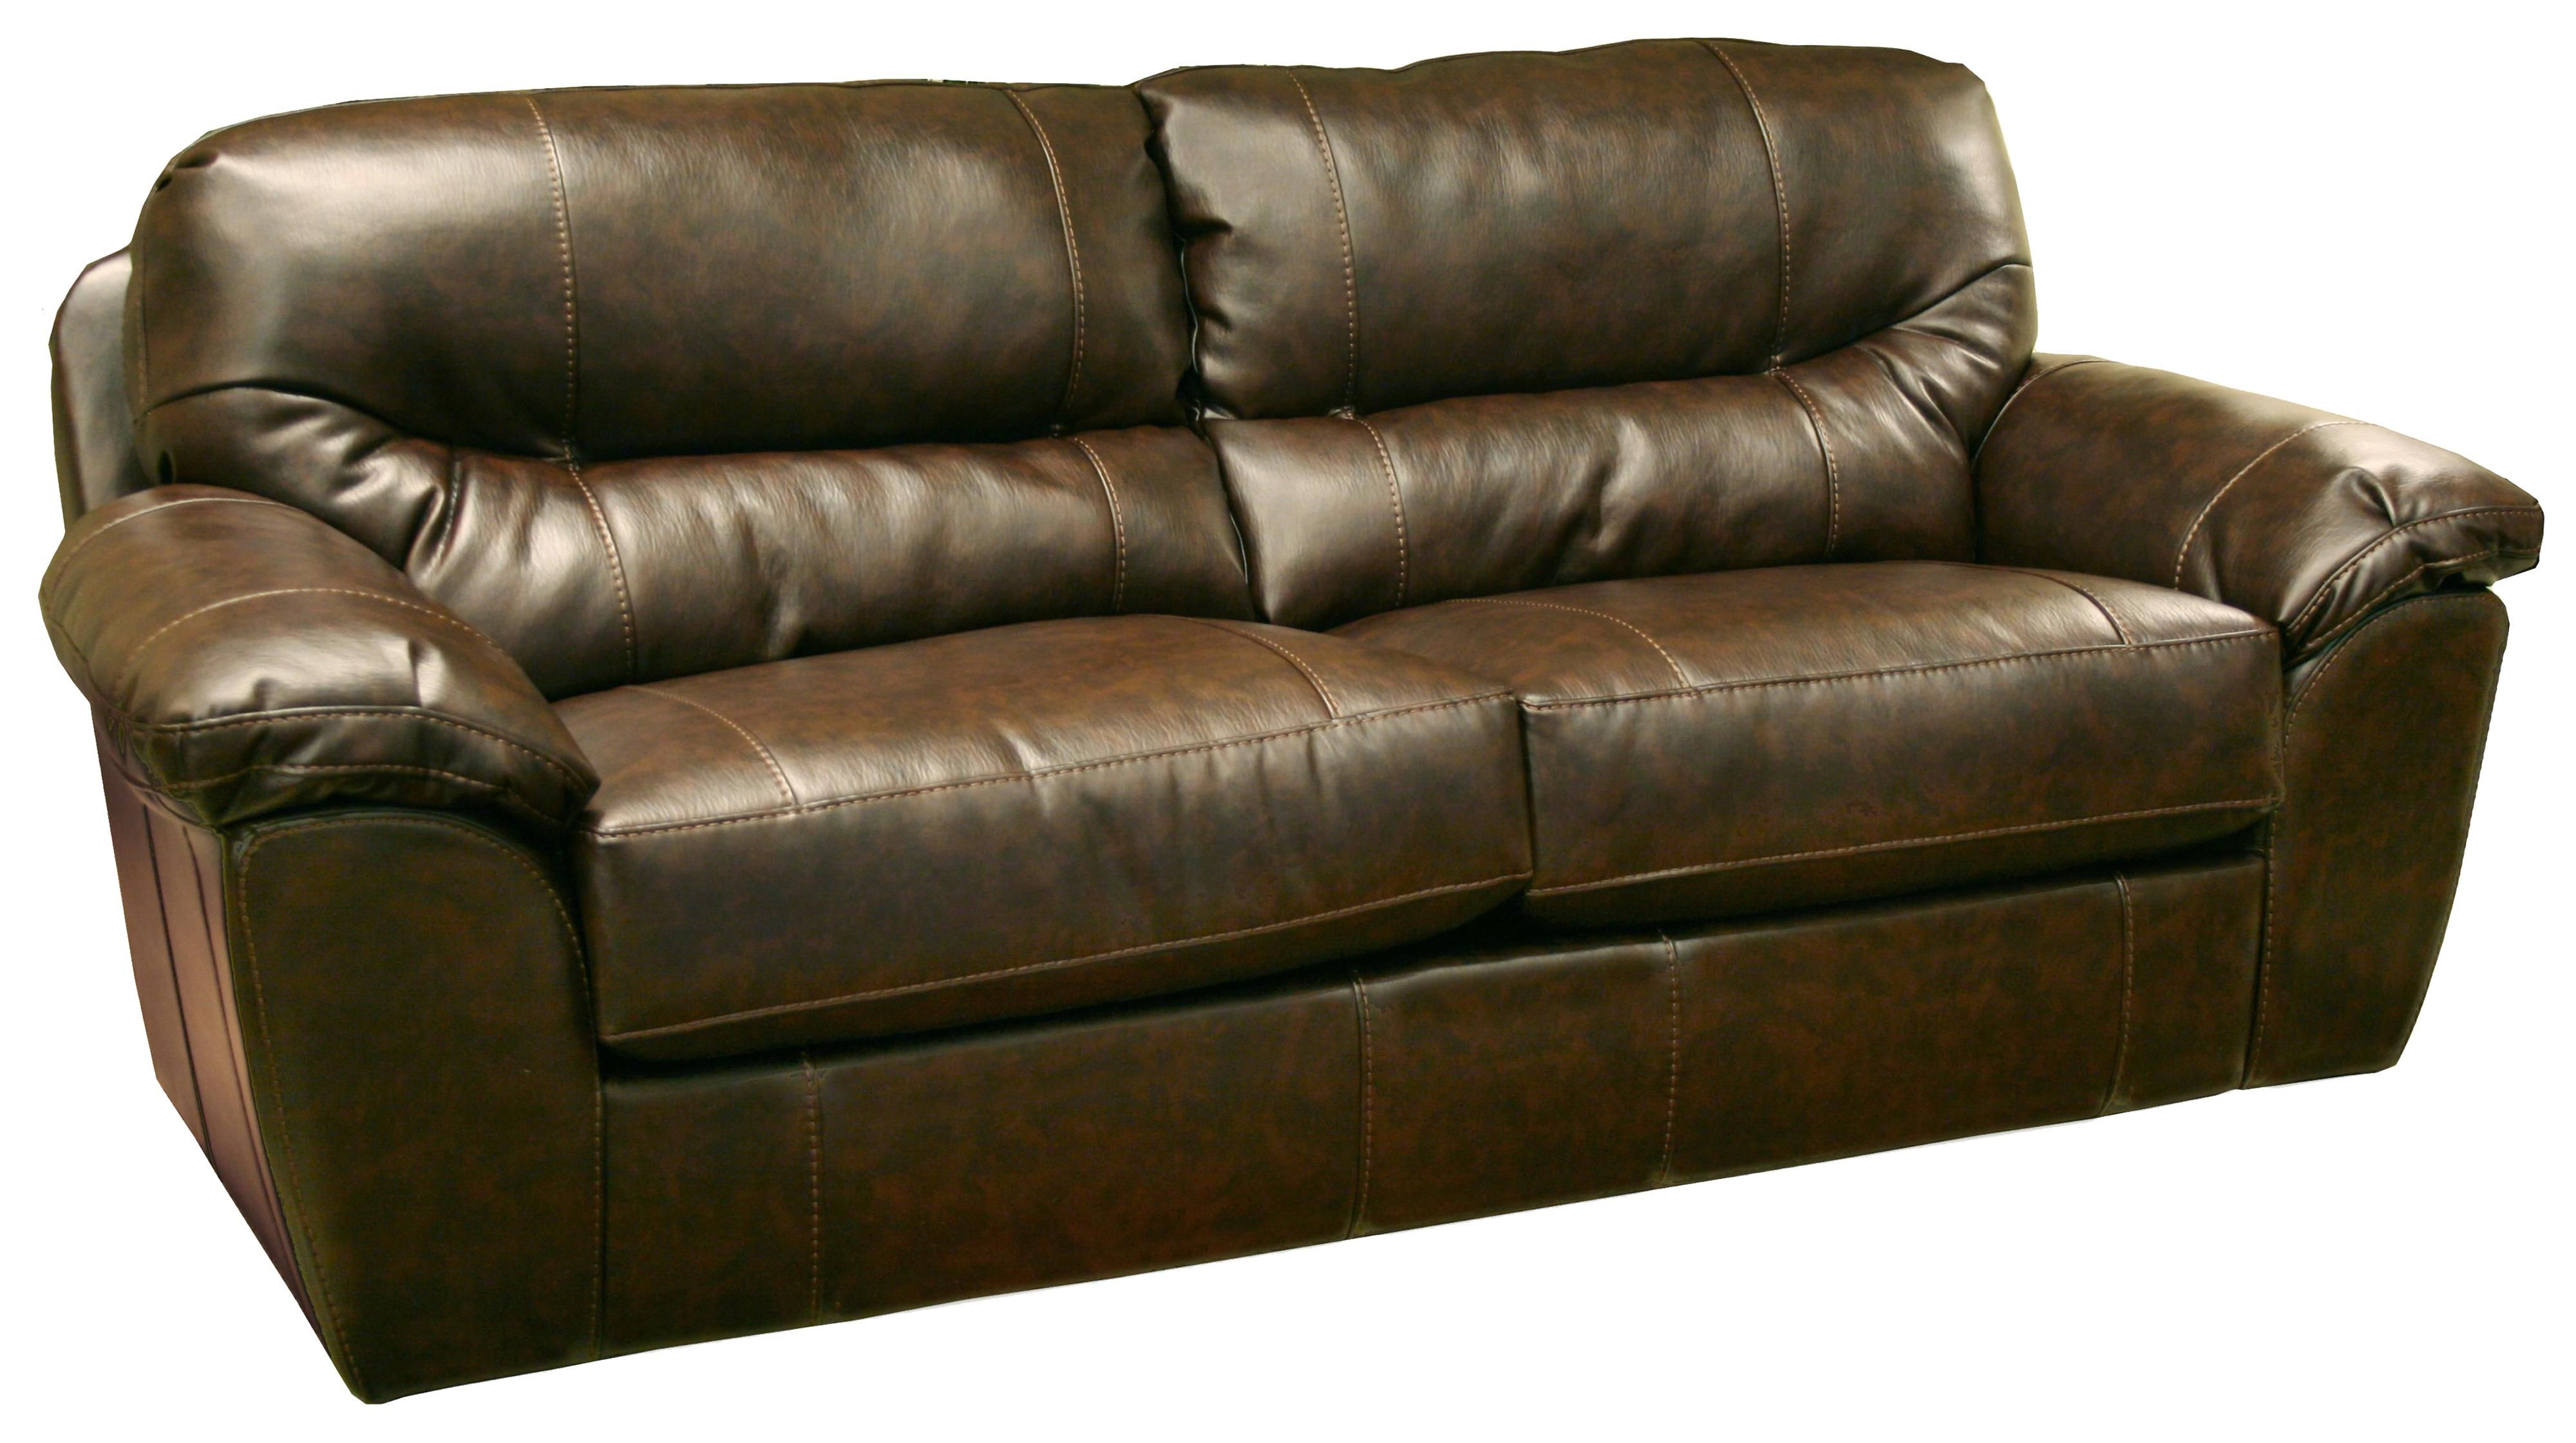 Brantley Sofa By Jackson Furniture Faux Leather Sofa Nebraska Furniture Mart Jackson Furniture